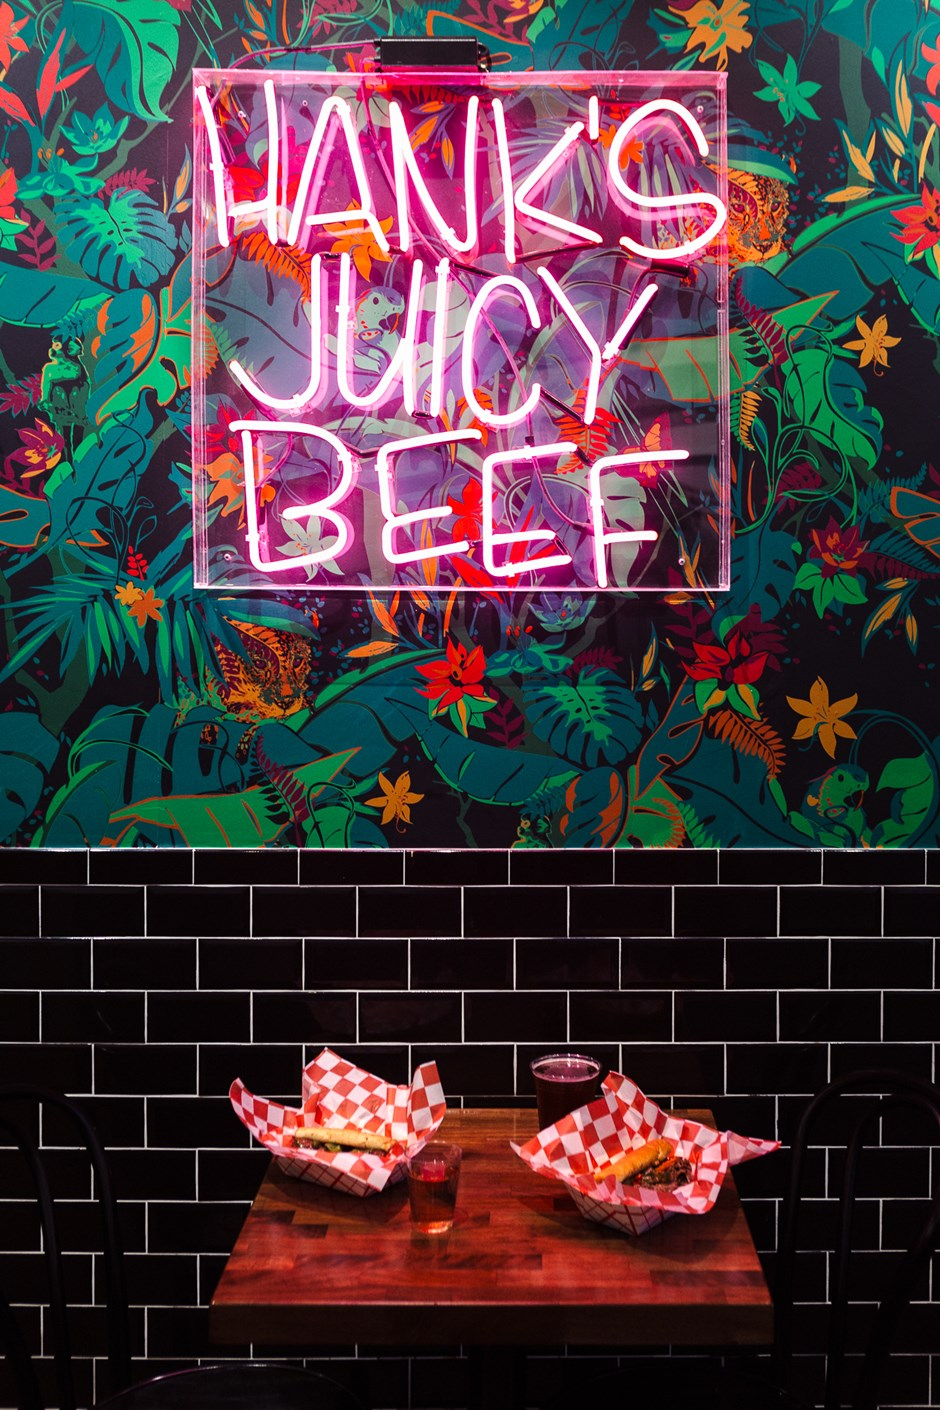 Hank's Juicy Beef Table Wallpaper.jpg